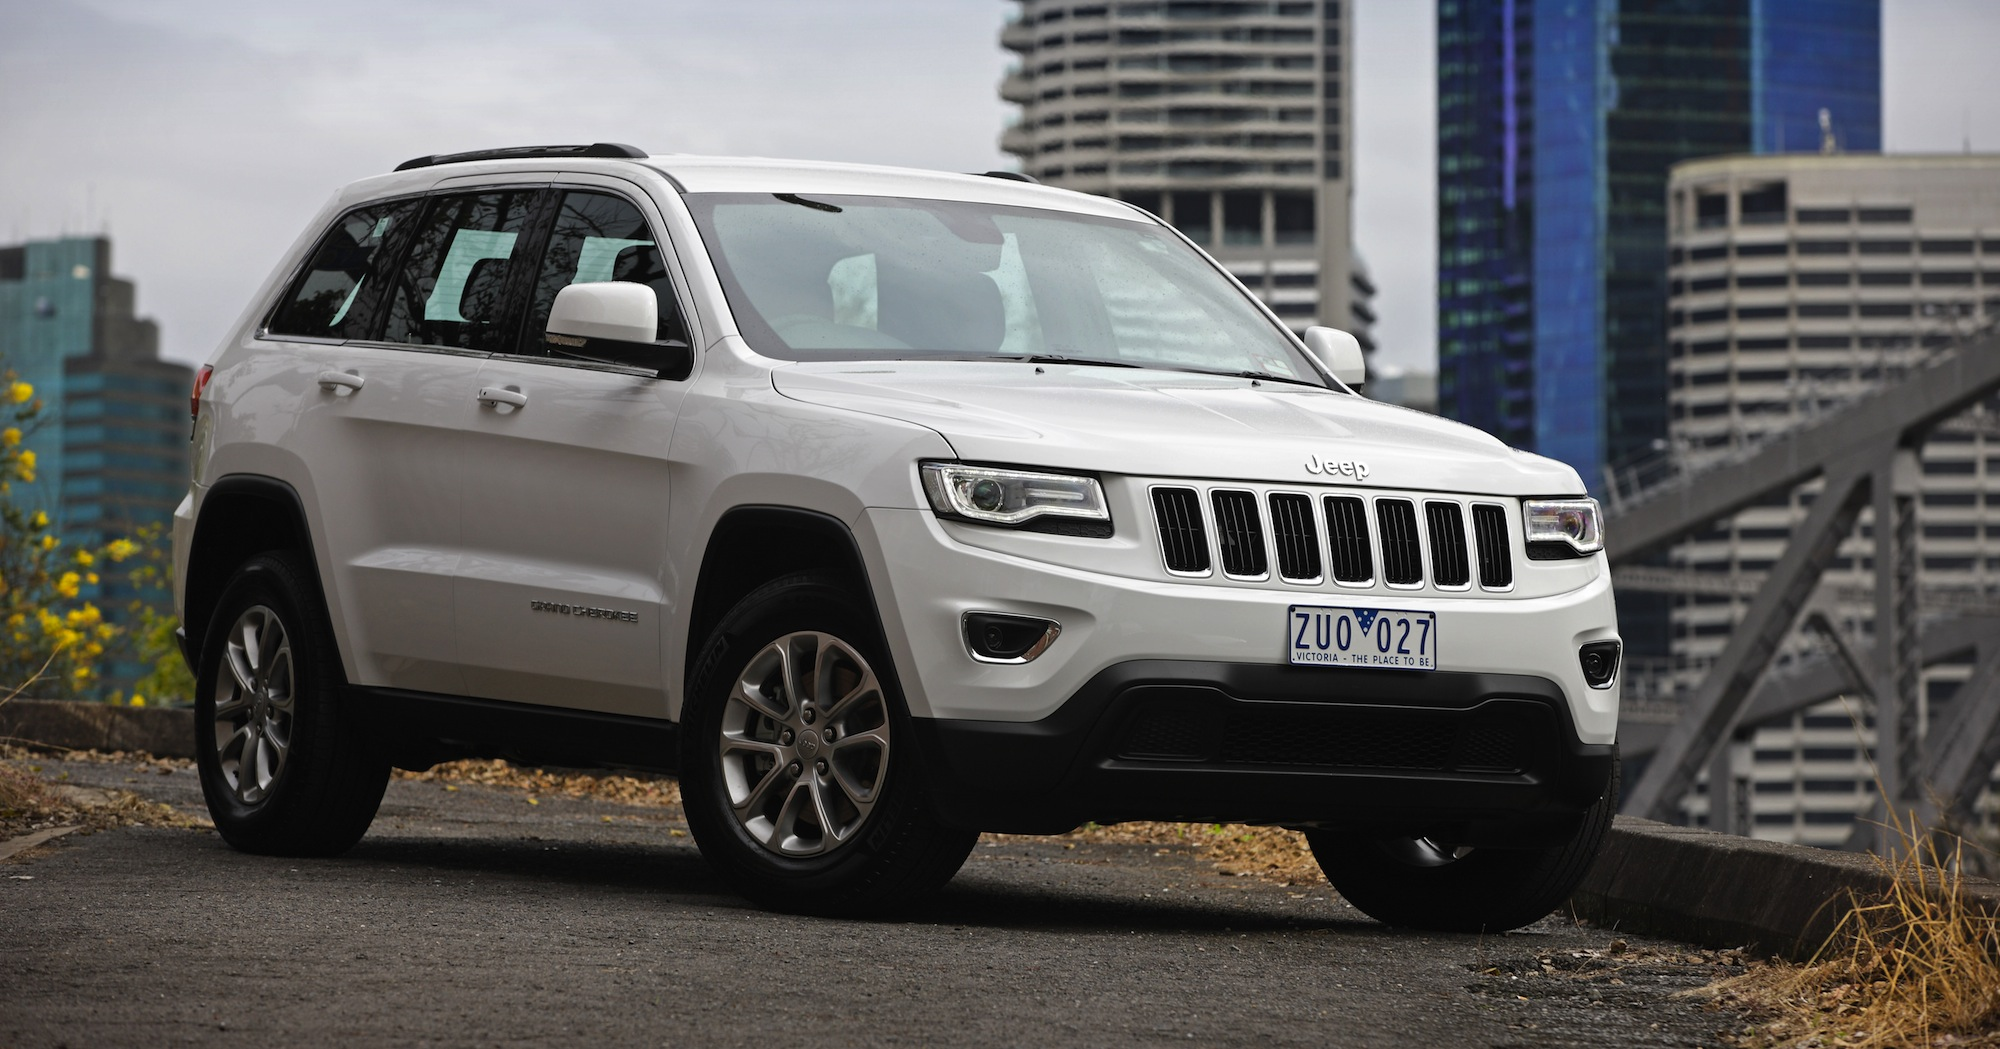 jeep grand cherokee recalls : esc issue, safety tech problems for